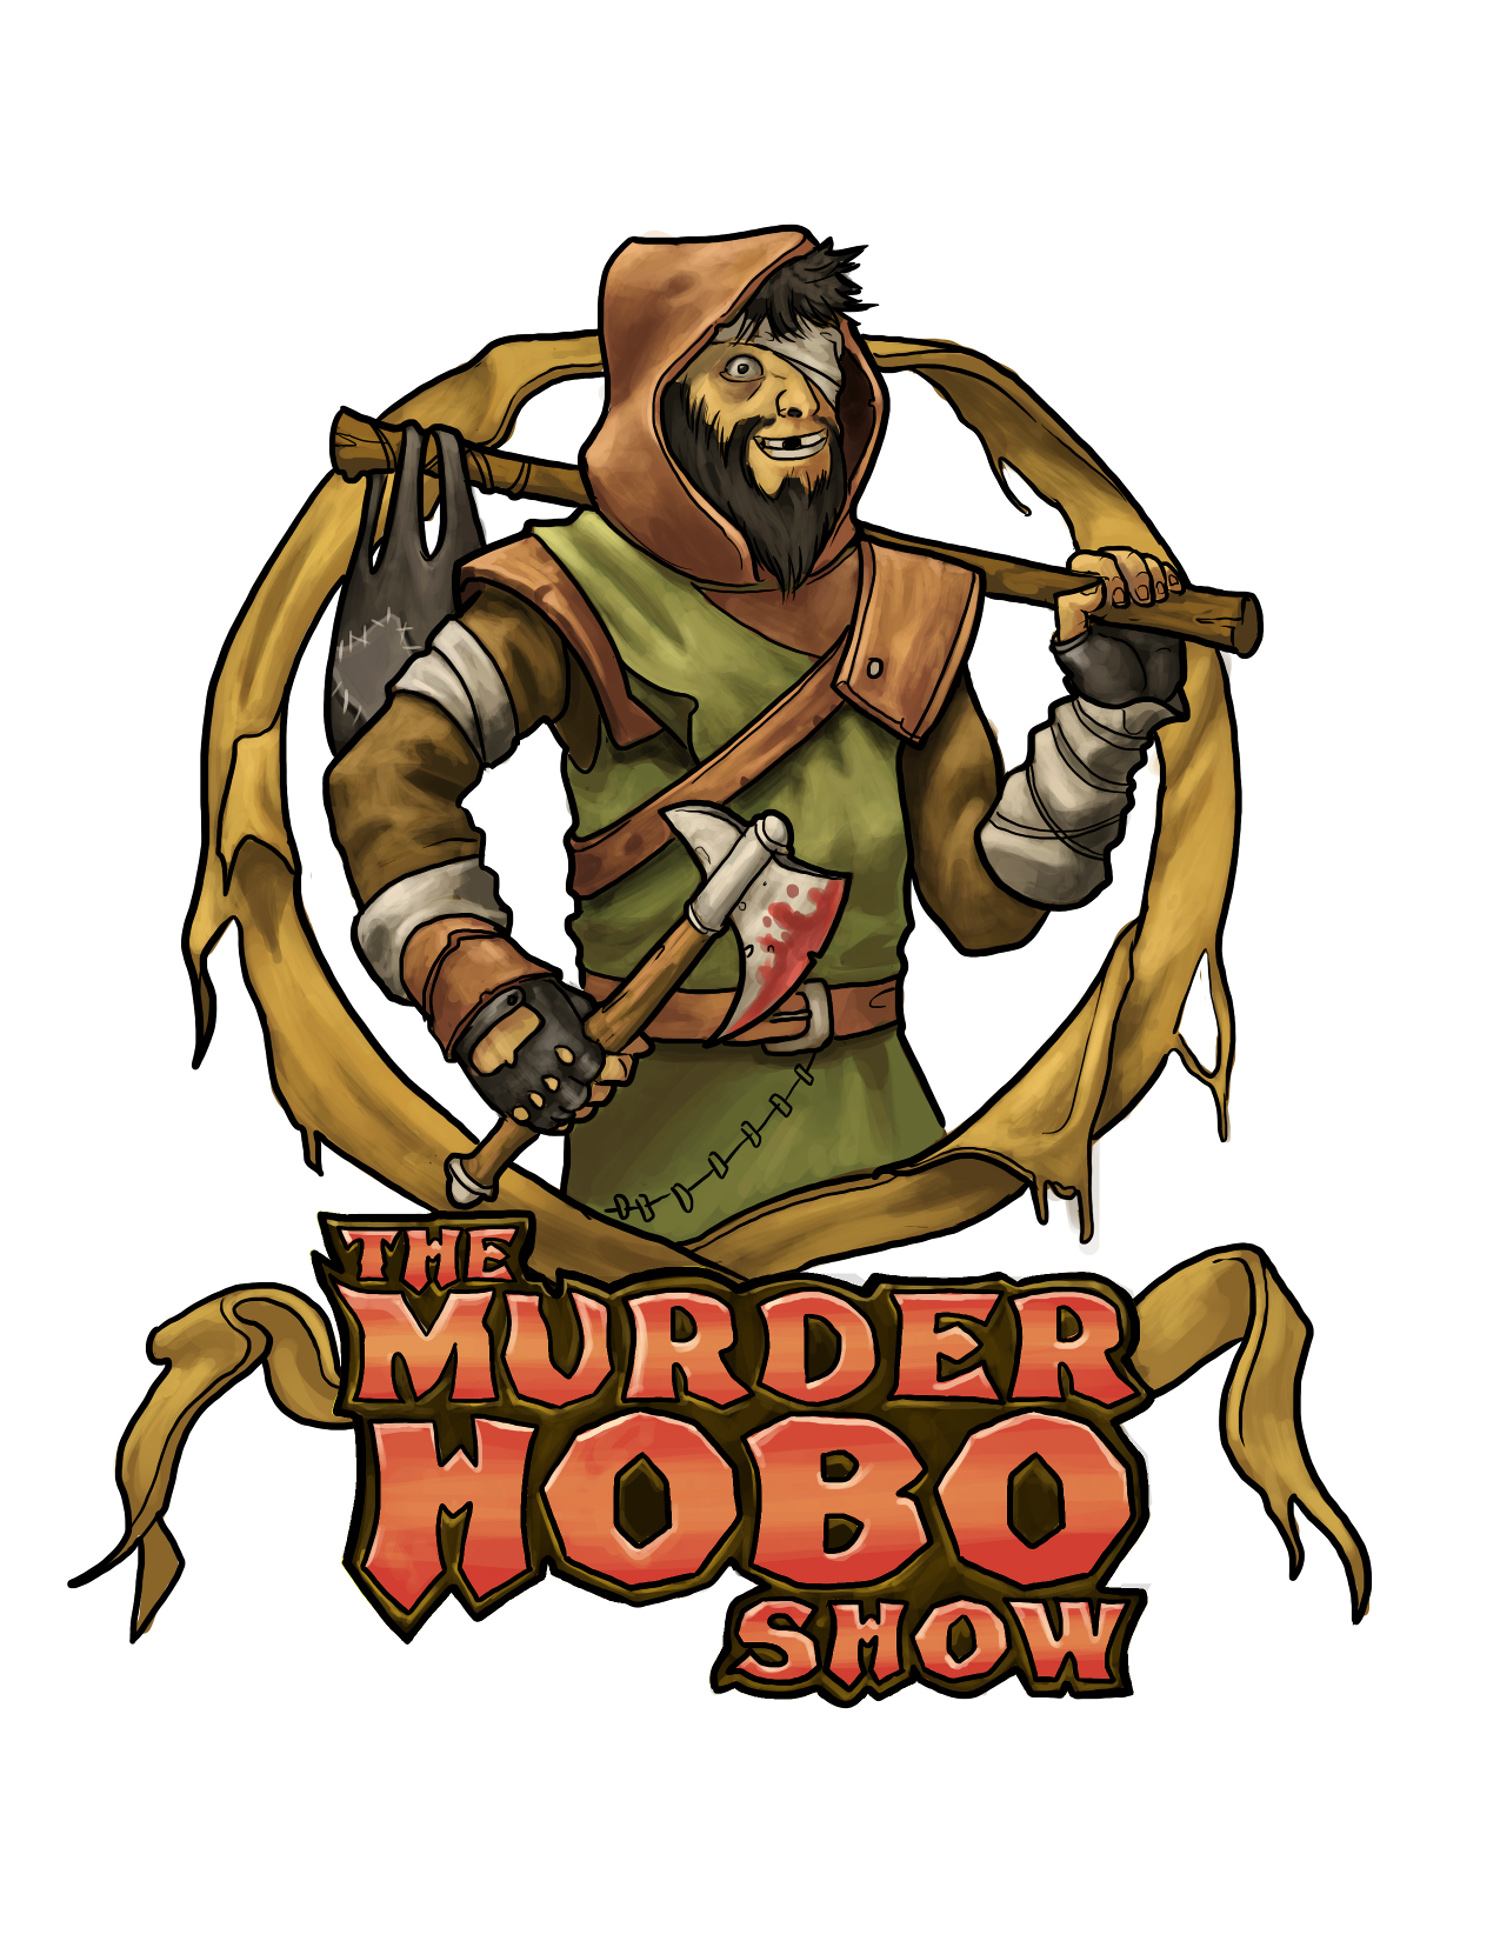 The Murder Hobo Show